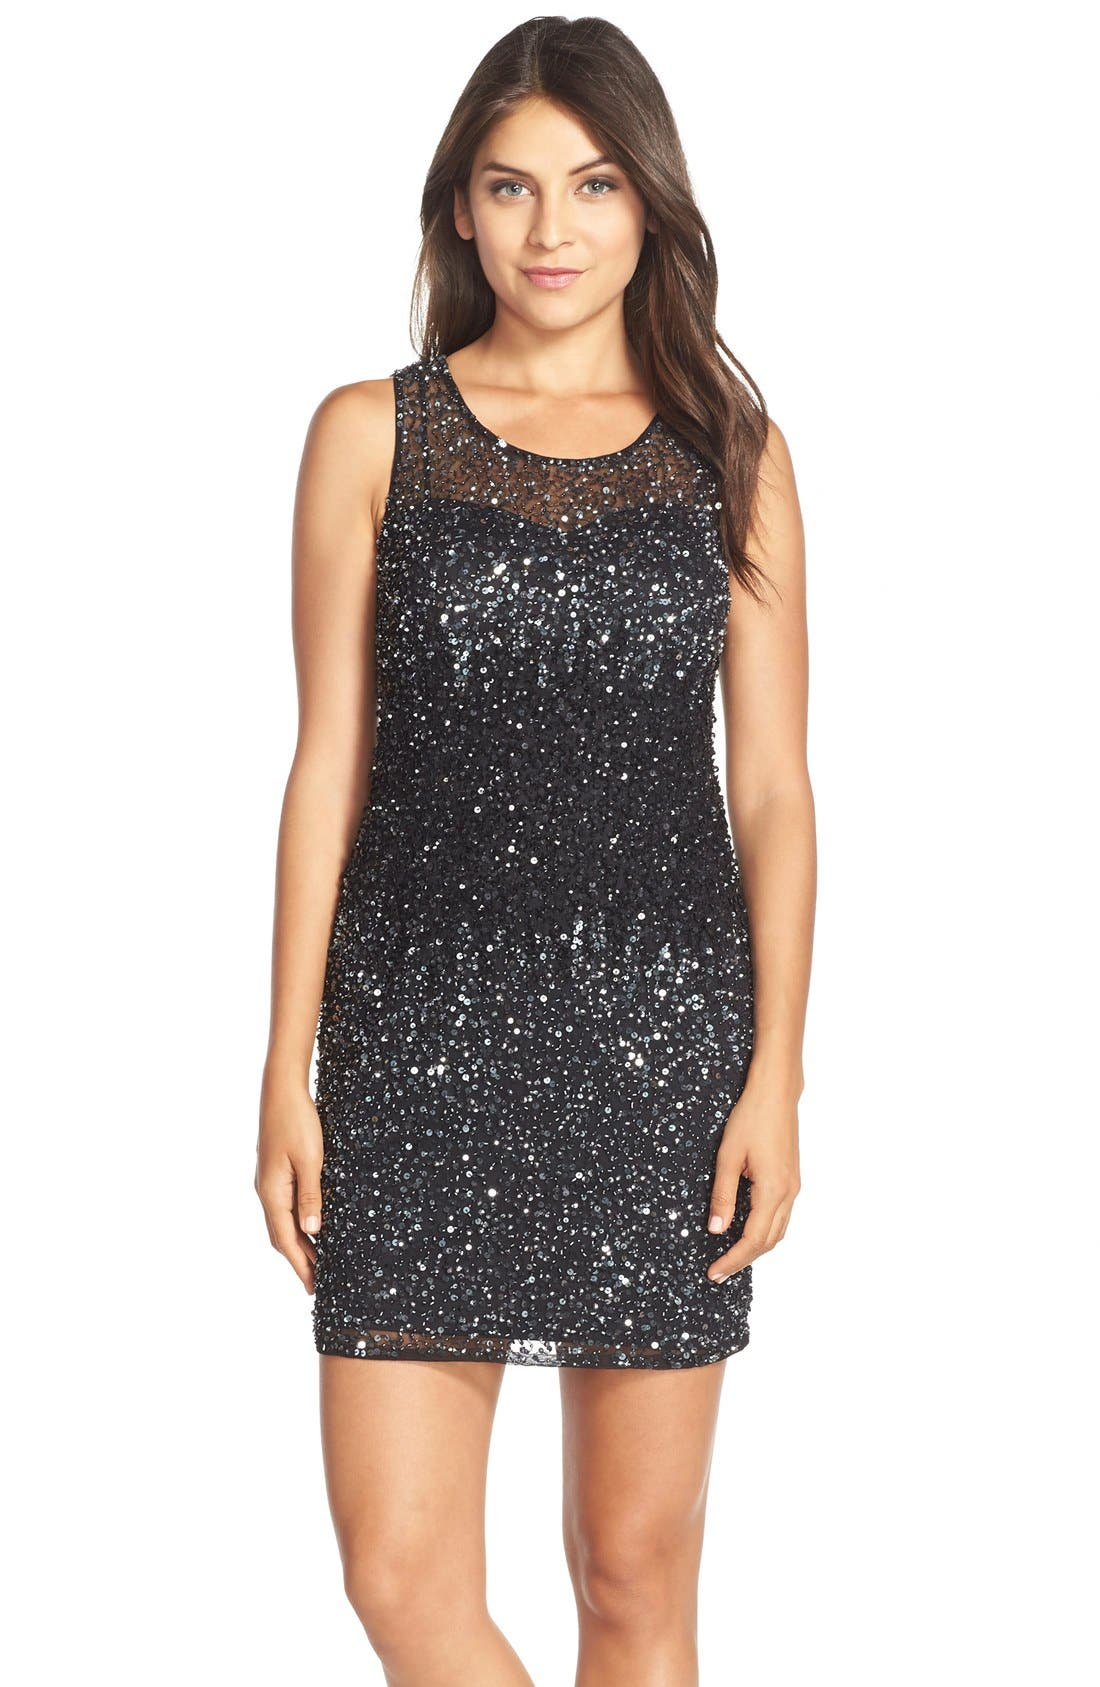 Alternate Image 1 Selected - Adrianna Papell Embellished Mesh Dress